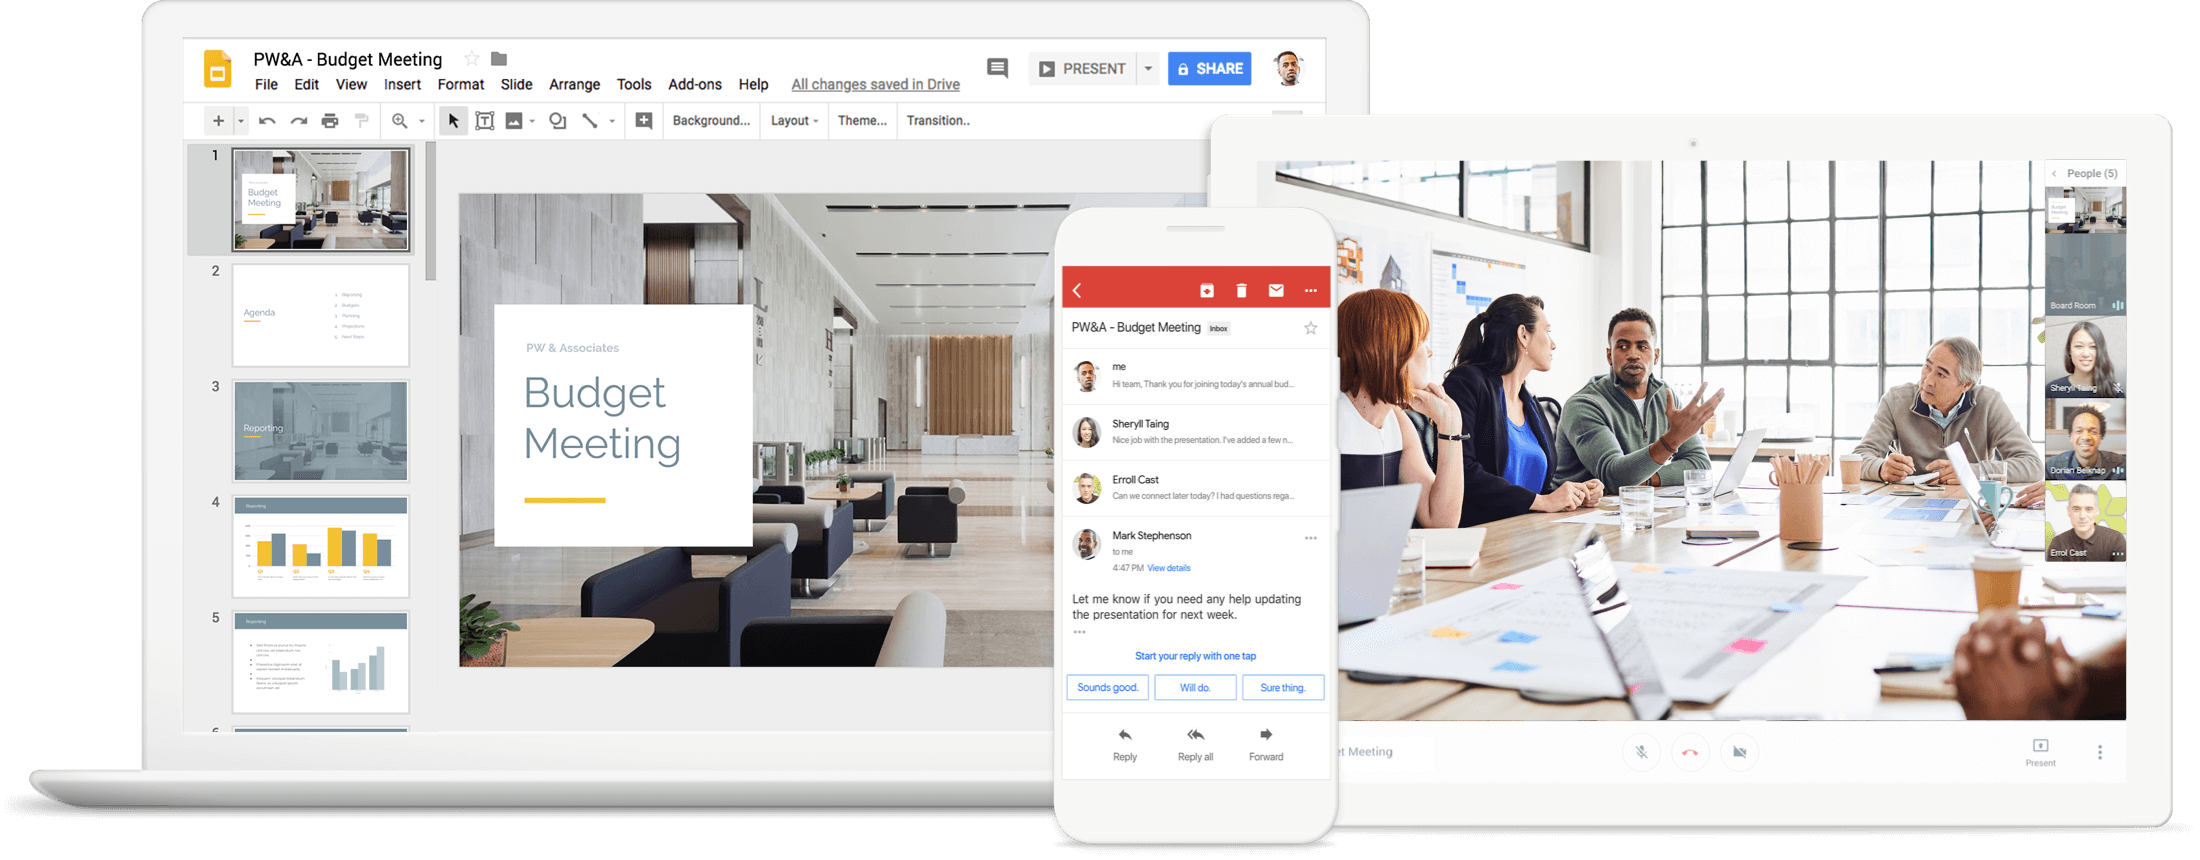 Gsuite Productivity suites